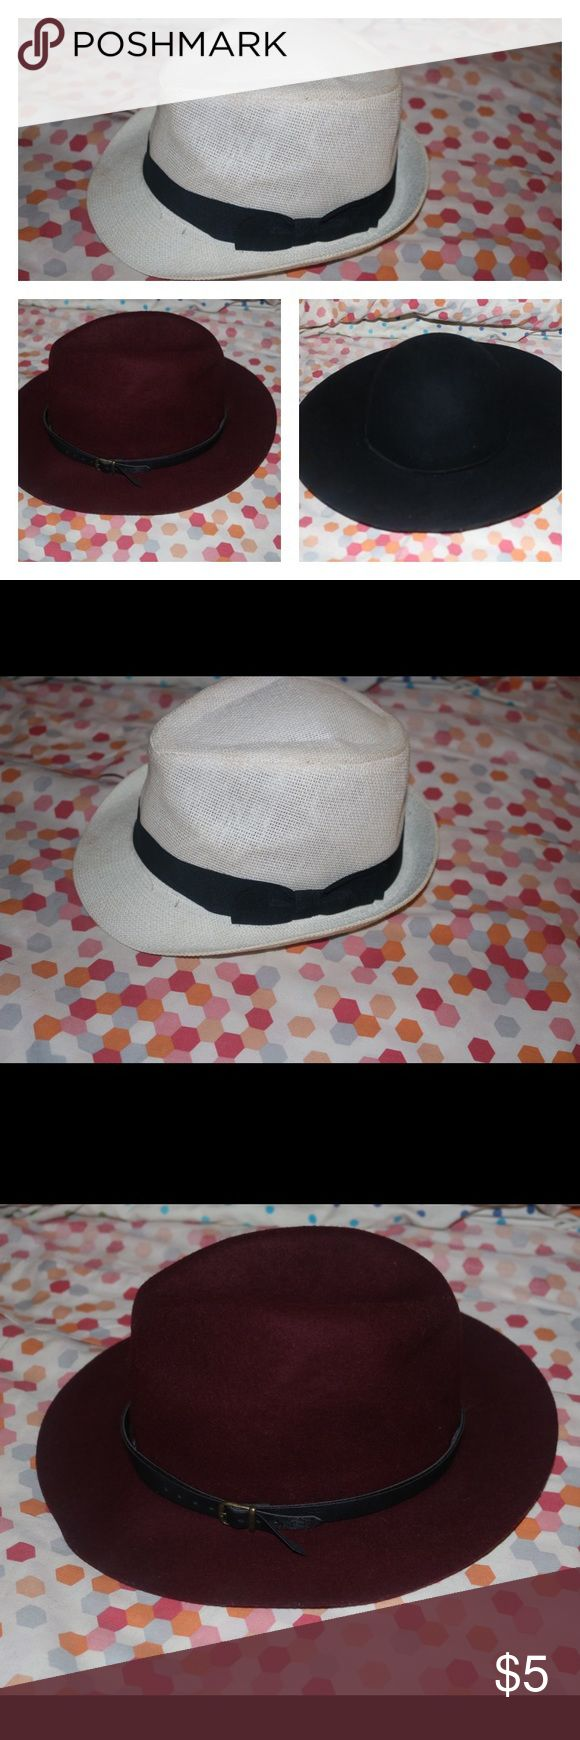 Black fedora hat Black fedora hat Forever 21 Accessories Hats